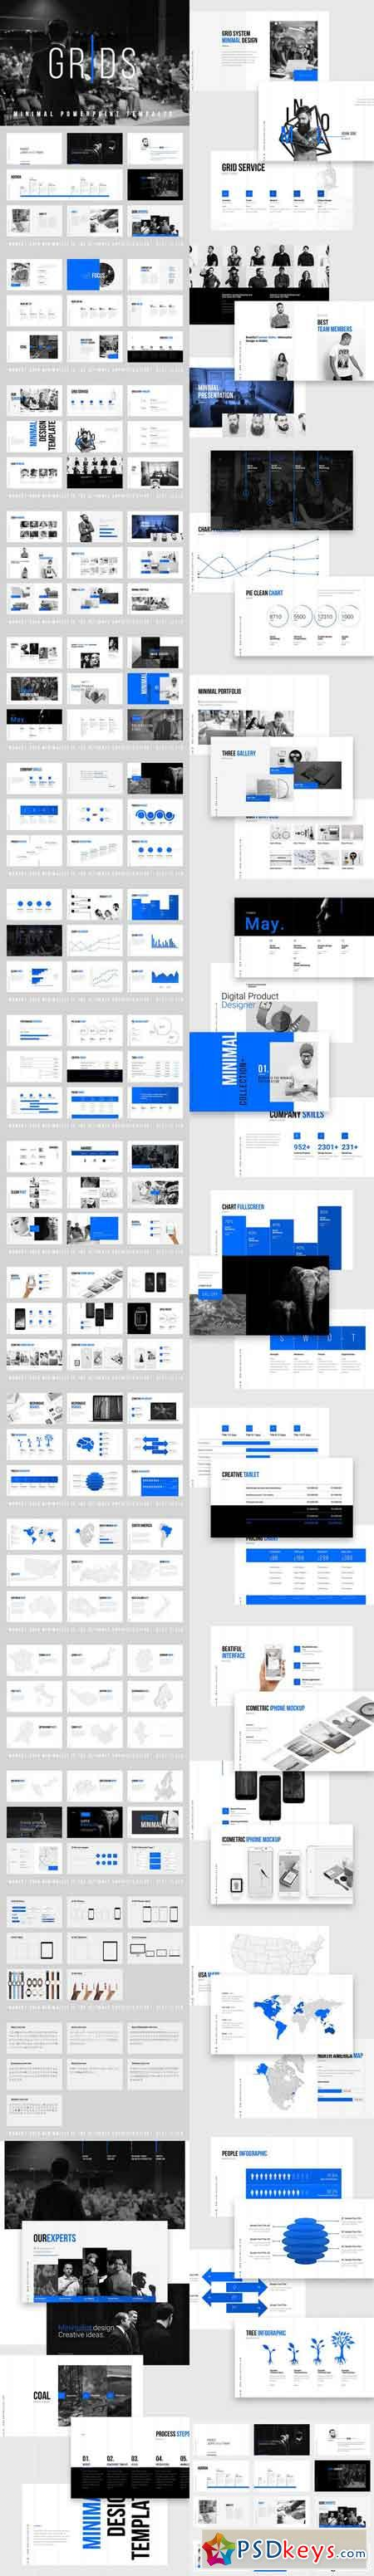 Grids-Minimal Powerpoint Template 849891